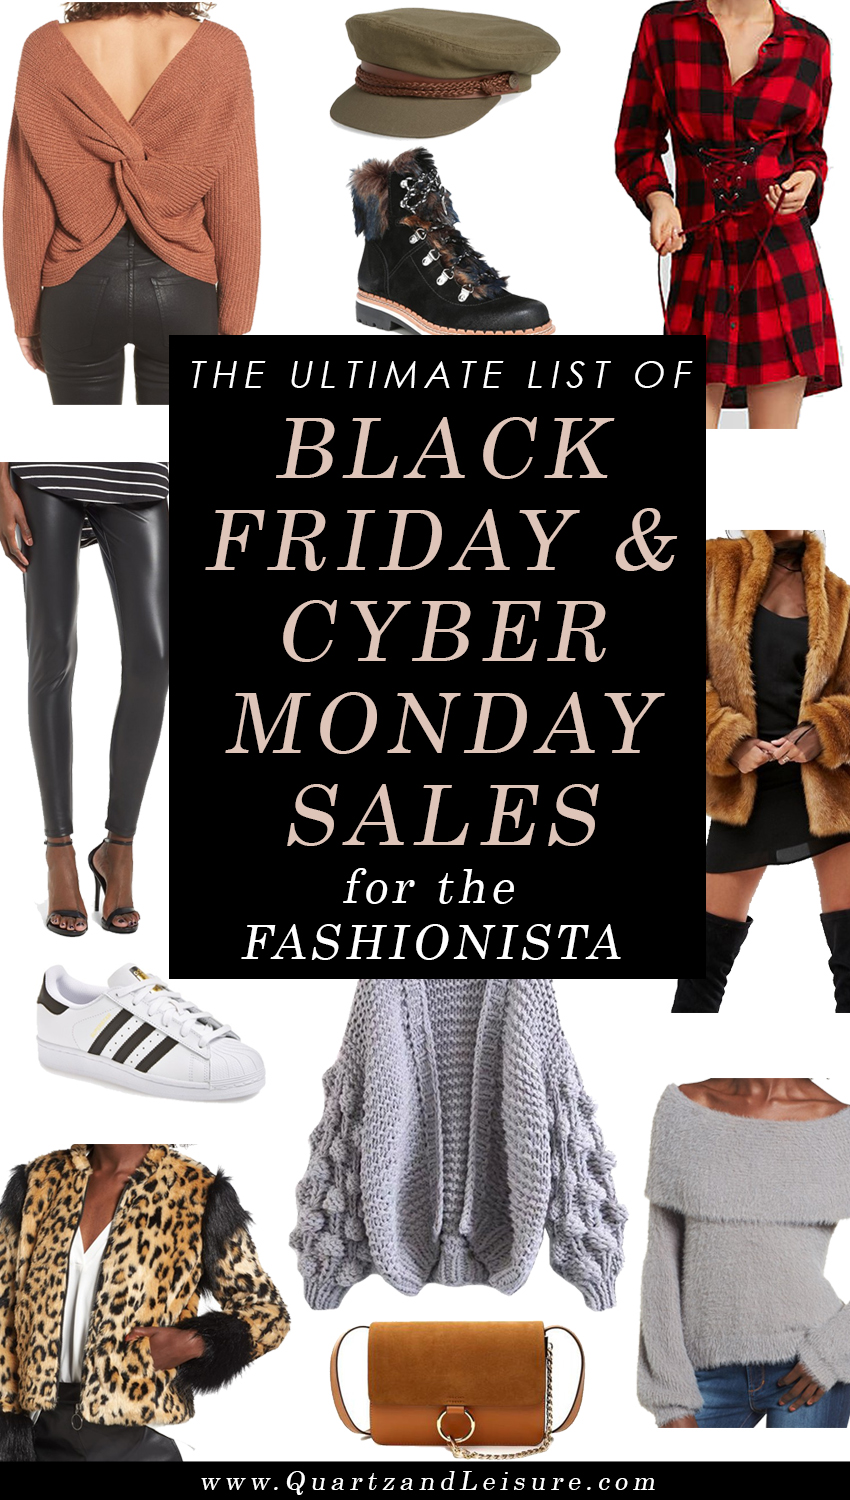 The Ultimate List of Black Friday Sales 2017 - Cyber Monday Sales 2017